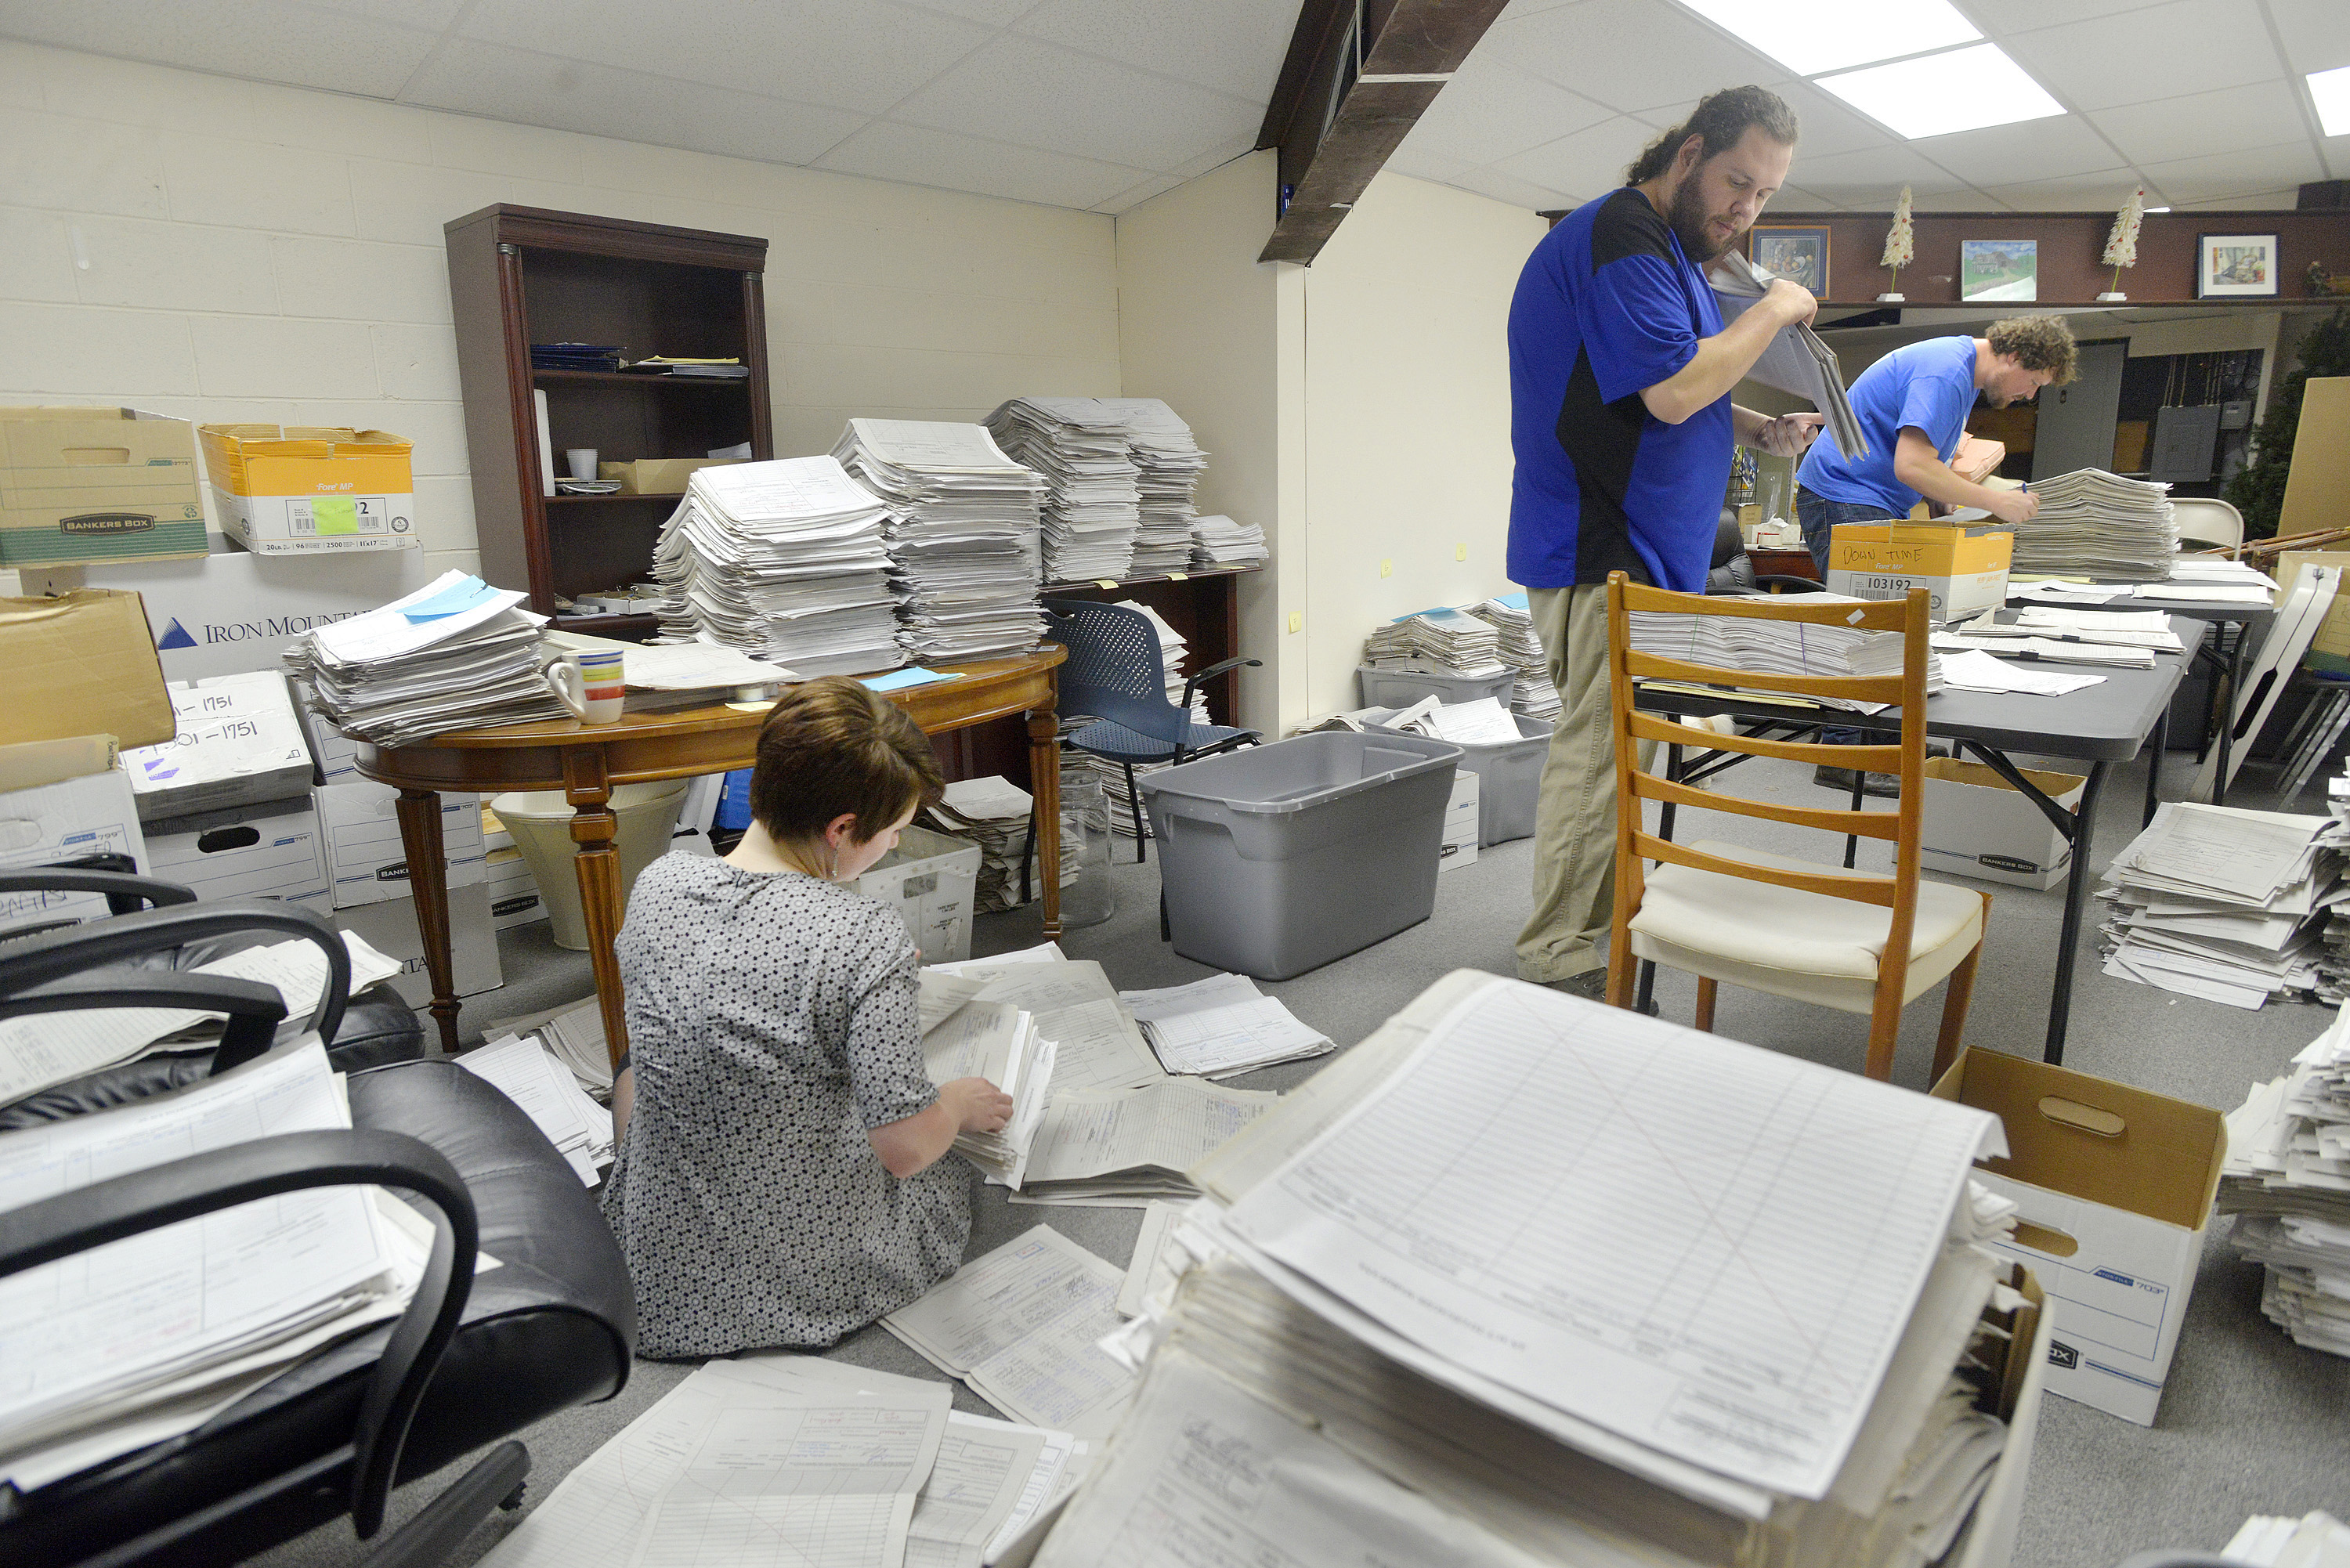 Staff and volunteers  for the marijuana legalization campaign are sorting petitions at their office in Falmouth. Volunteer Allison Cormier (left) along with office manager Shaun Bowen (center) and field director Jordan DeCoster sort and organize stacks of petitions at their campaign headquarters.